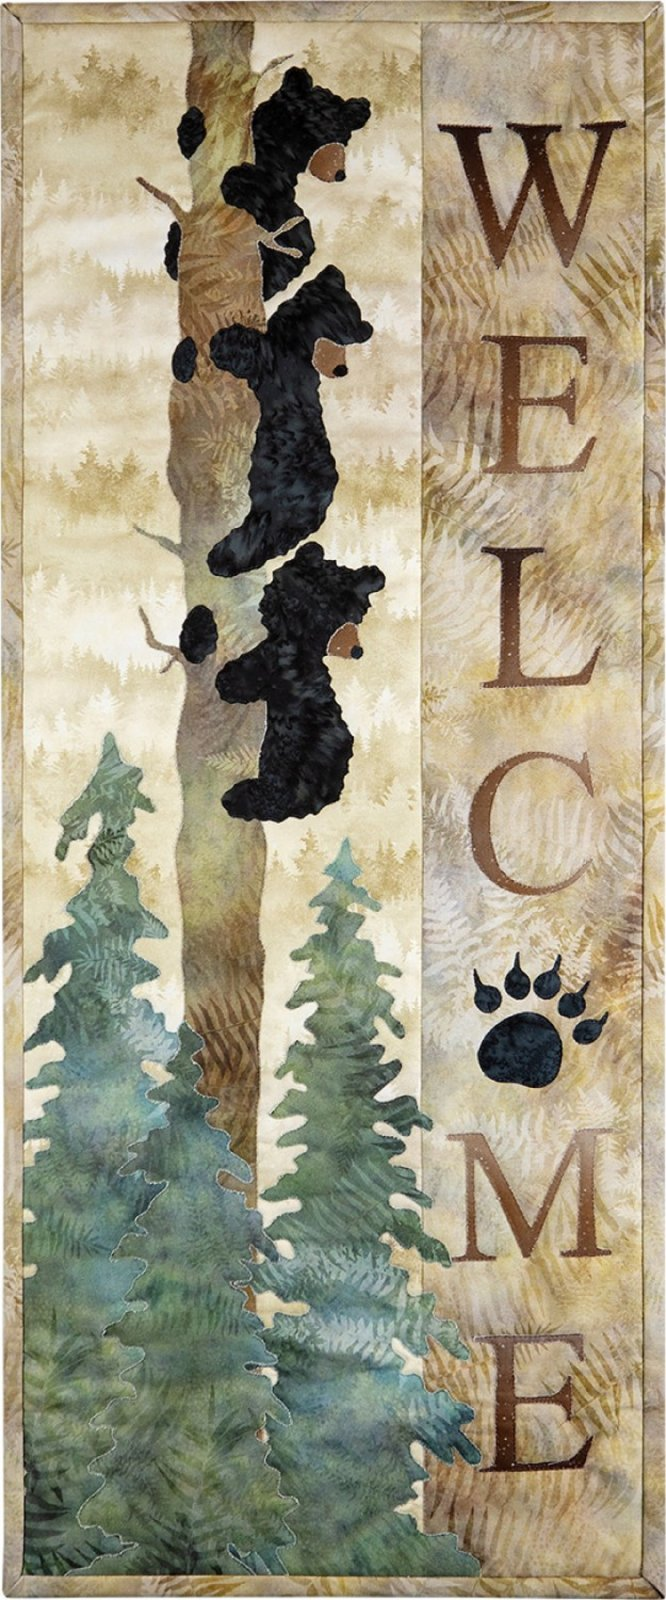 Welcome Bear Inn Quilt & Laser Cut Kit by Mckenna Ryan